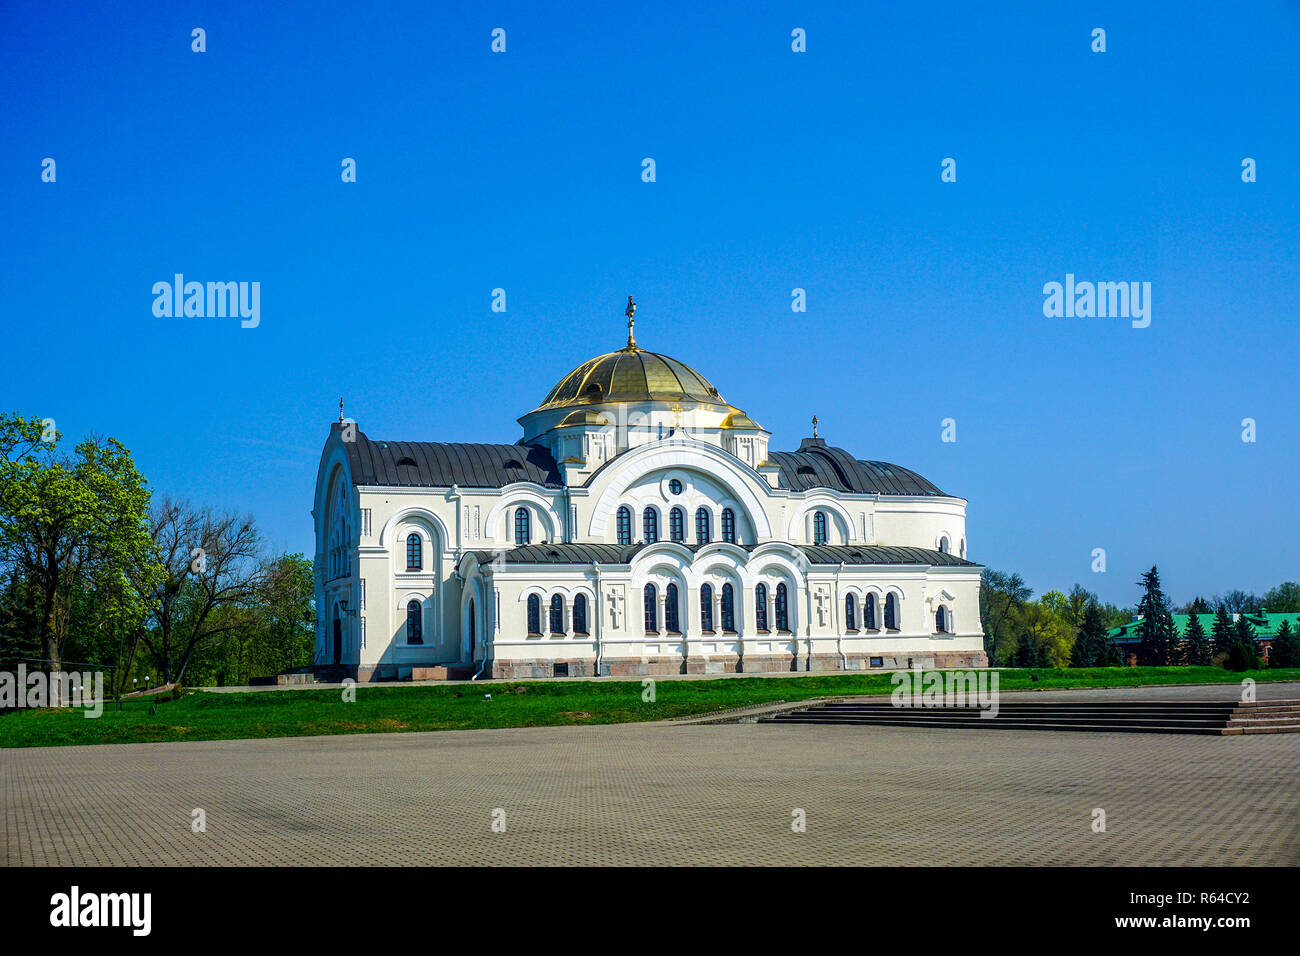 Brest Fortress Hero Complex Orthodox Christian Cathedral - Stock Image